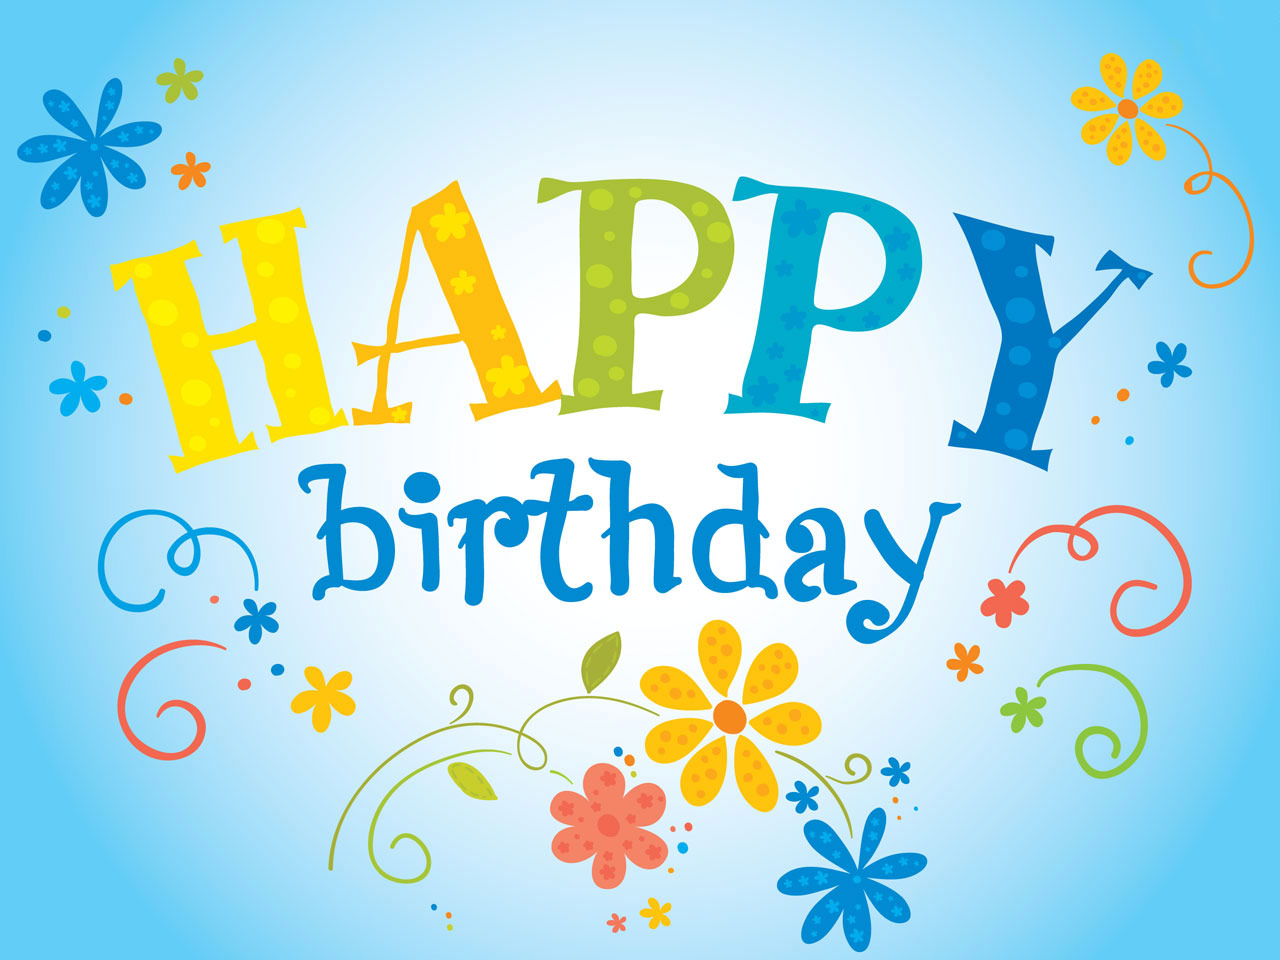 Happy Birthday Wallpaper pictures HD Wallpapers Backgrounds Photos 1280x960